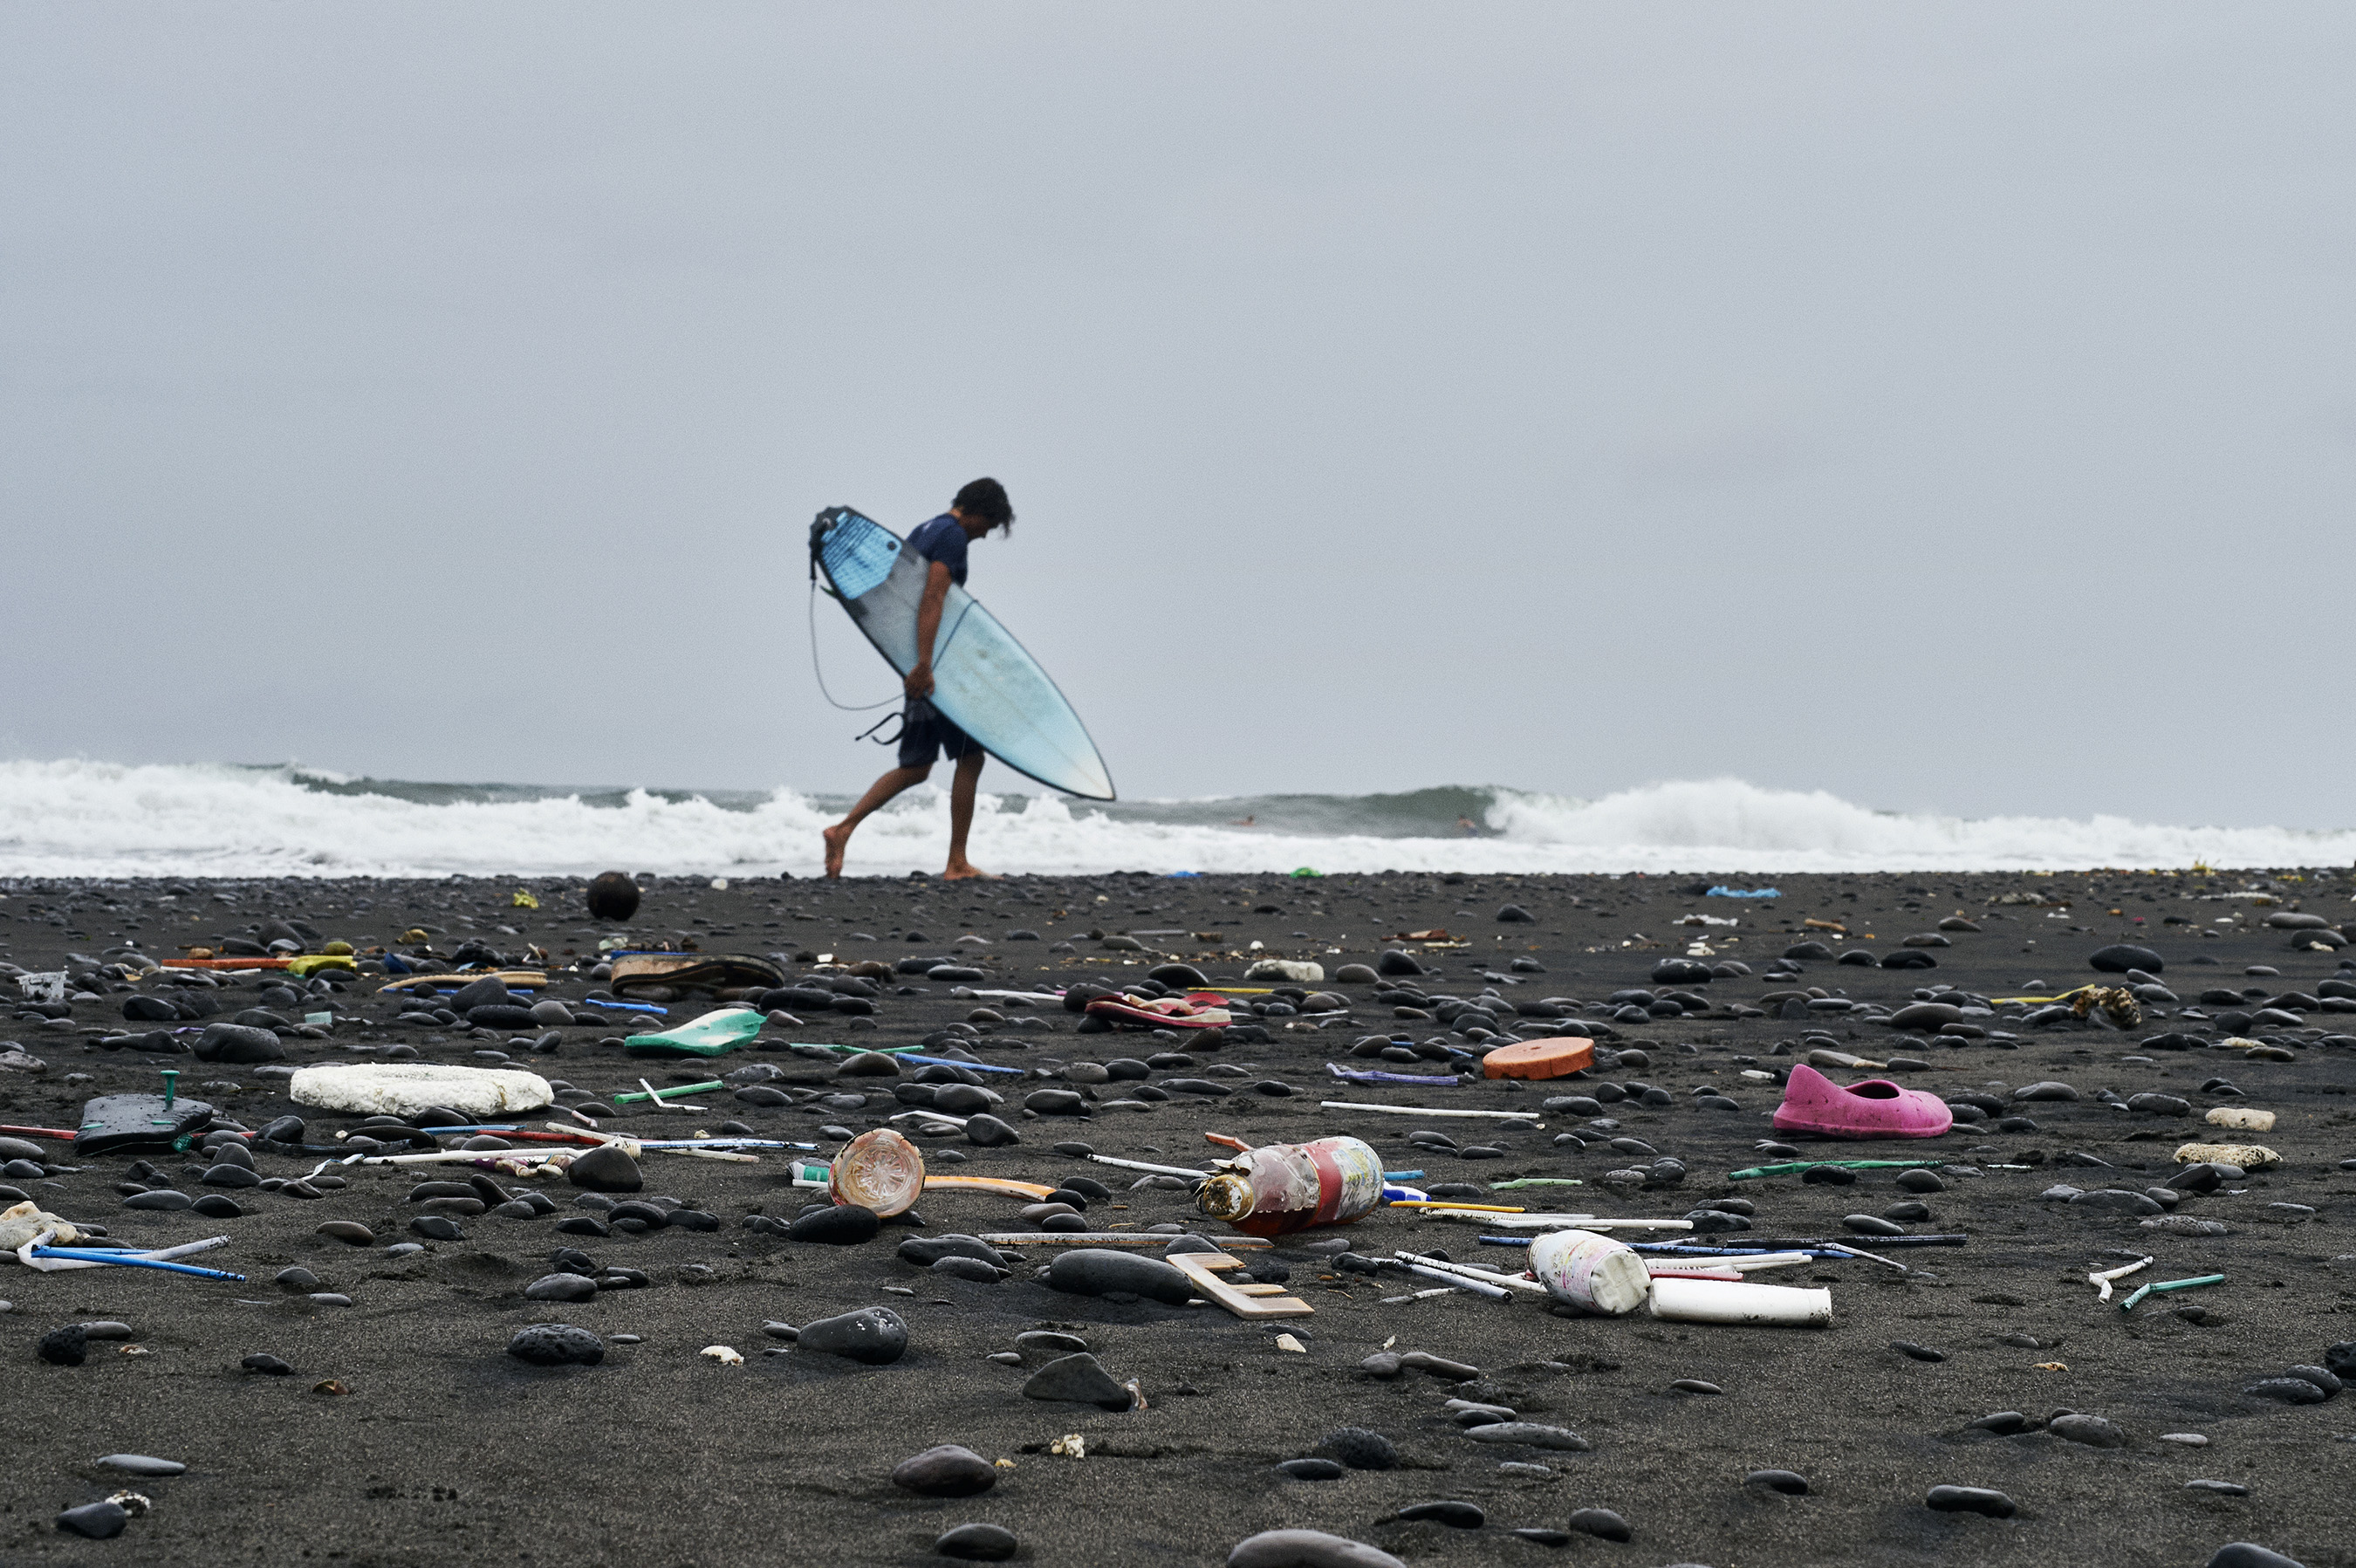 Bali beach littered with marine plastic pollution. Corona and Parley for the Oceans form a global partnership to address marine plastic pollution; commitment to protect 100 islands by 2020.